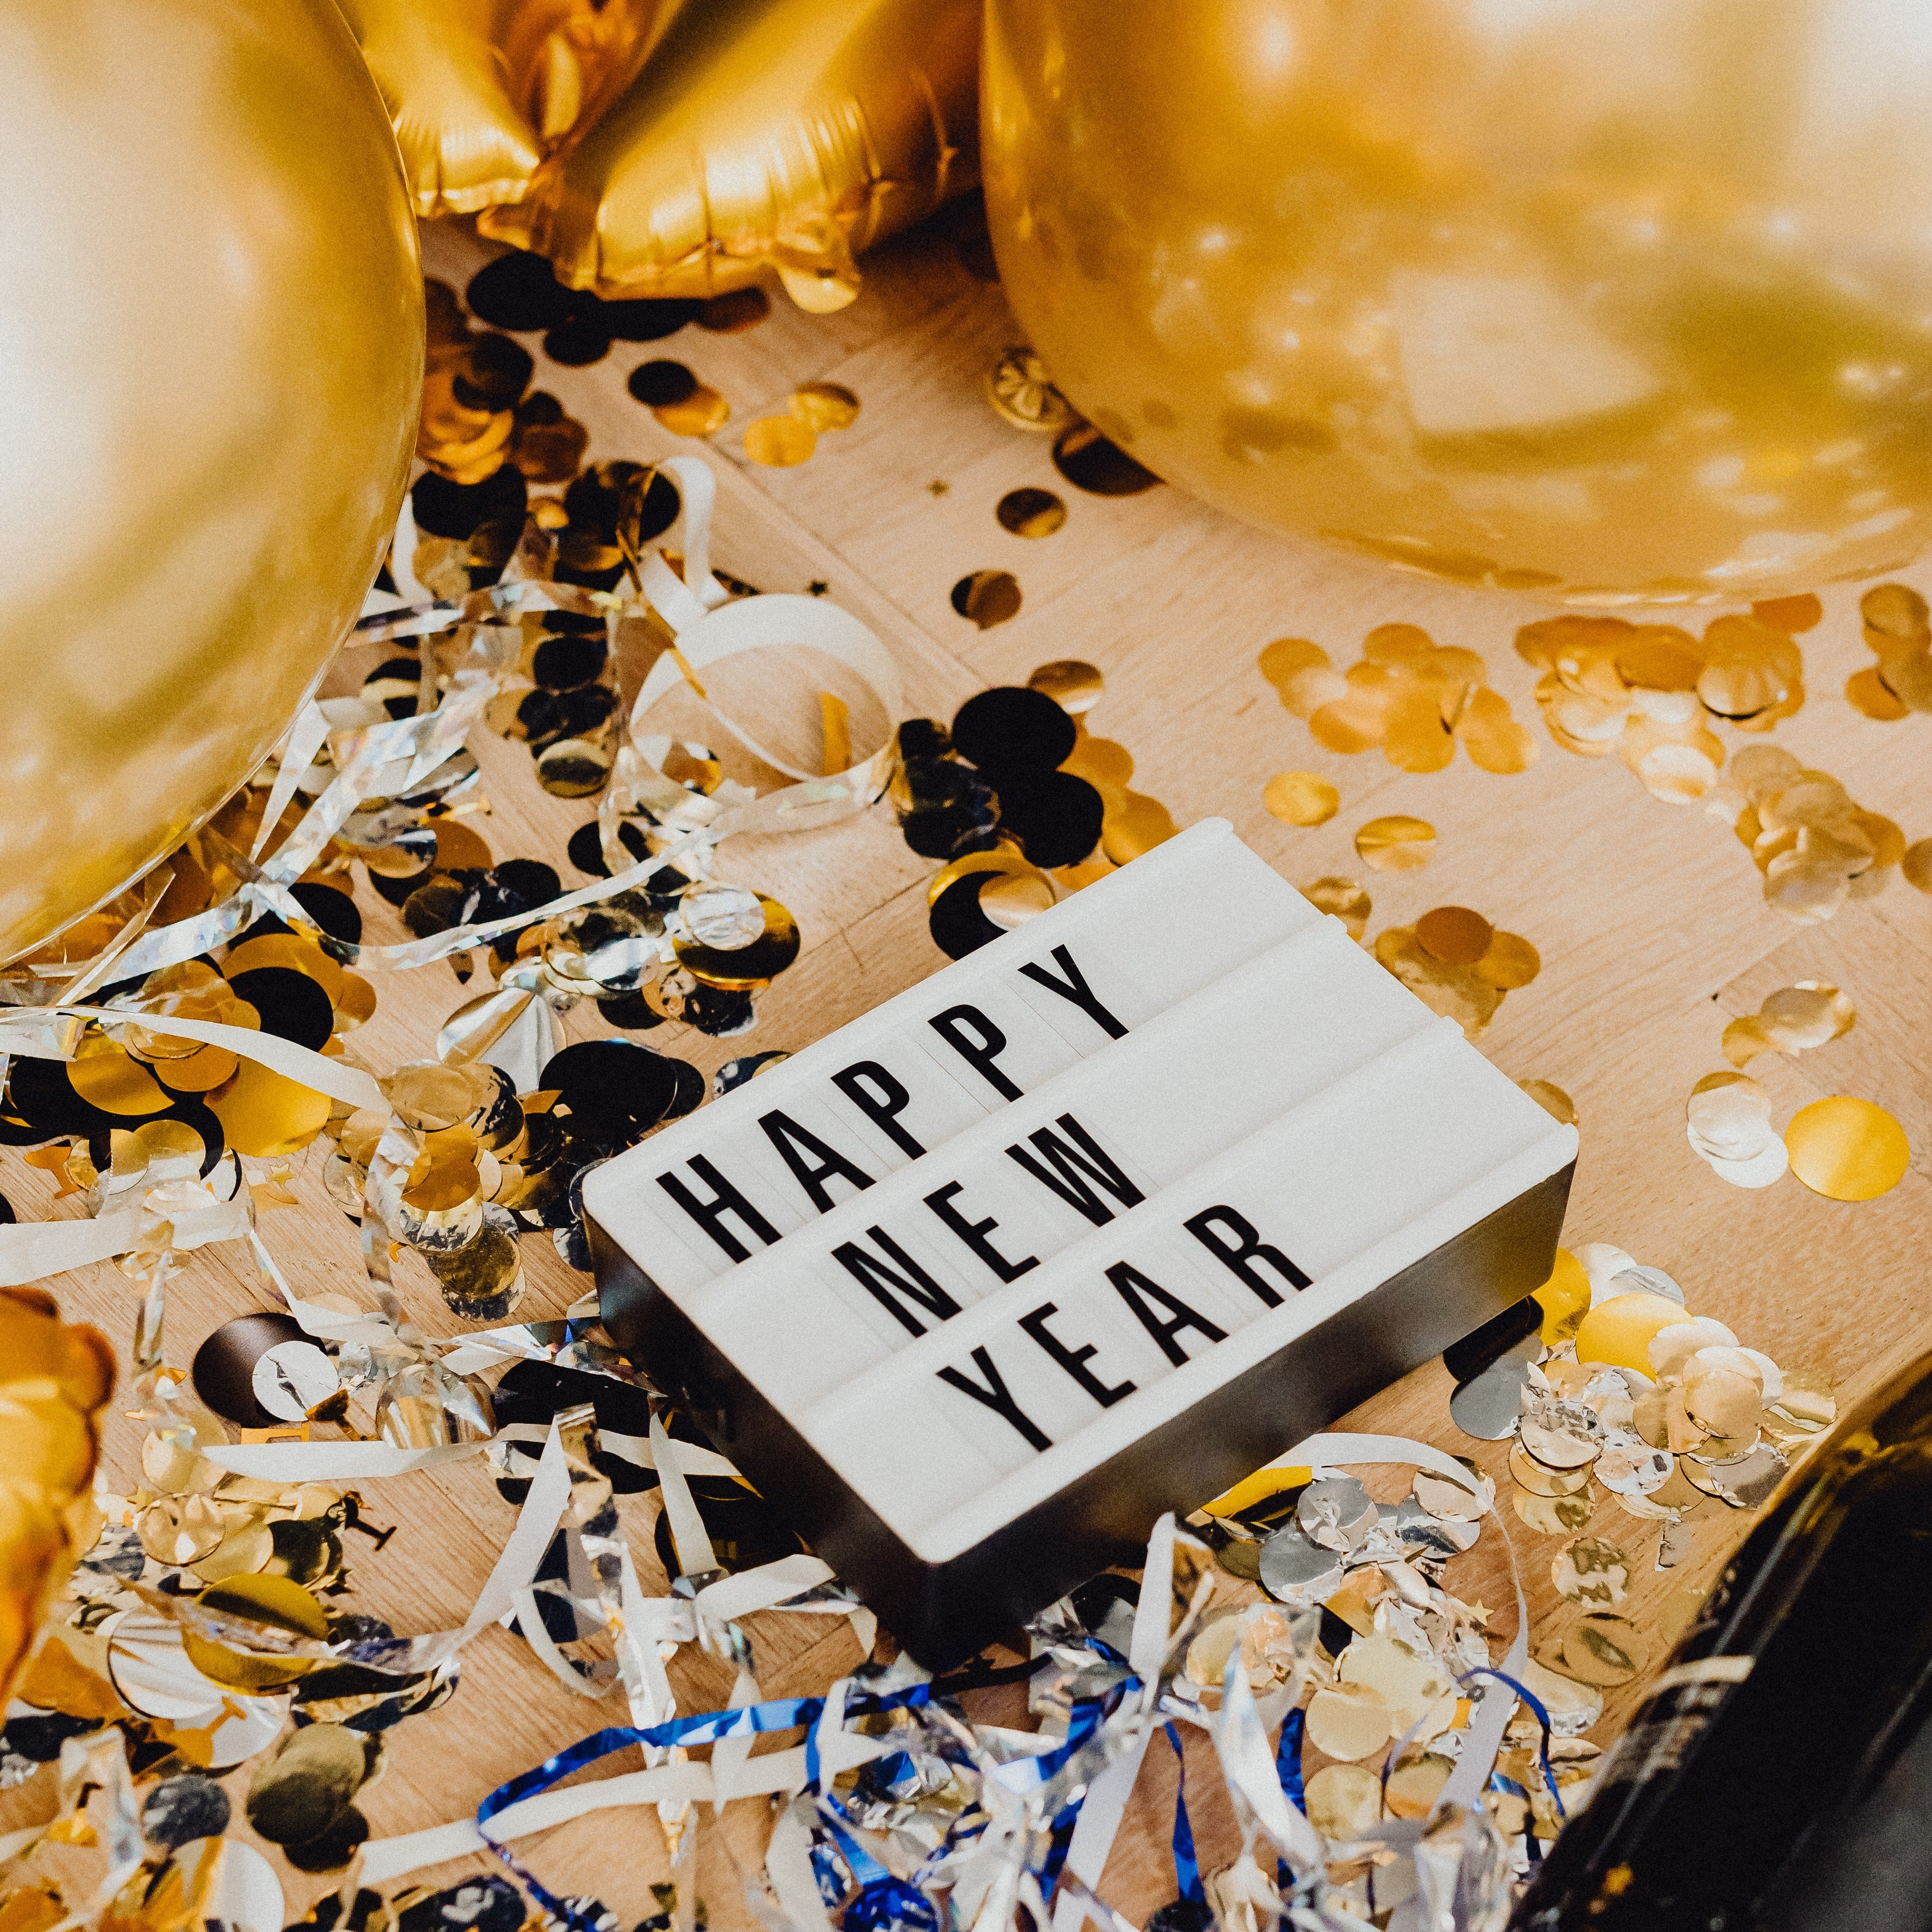 Happy New Year Sign with Gold balloons and confetti